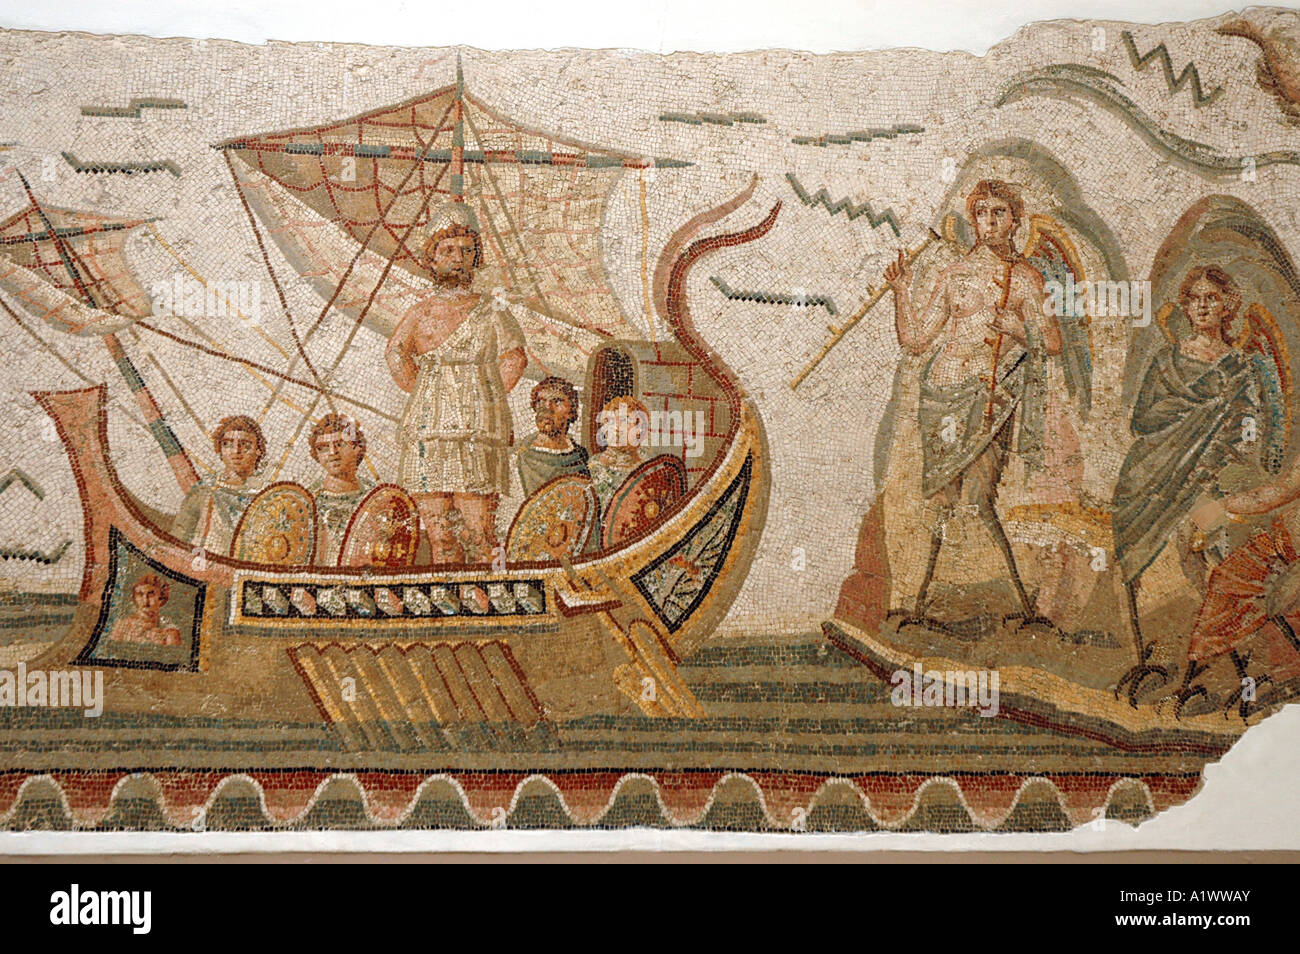 Mosaic scene from Homer's Odyssey, Ulysses meeting with sirens in The Bardo museum in Tunis, capital of Tunisia. - Stock Image